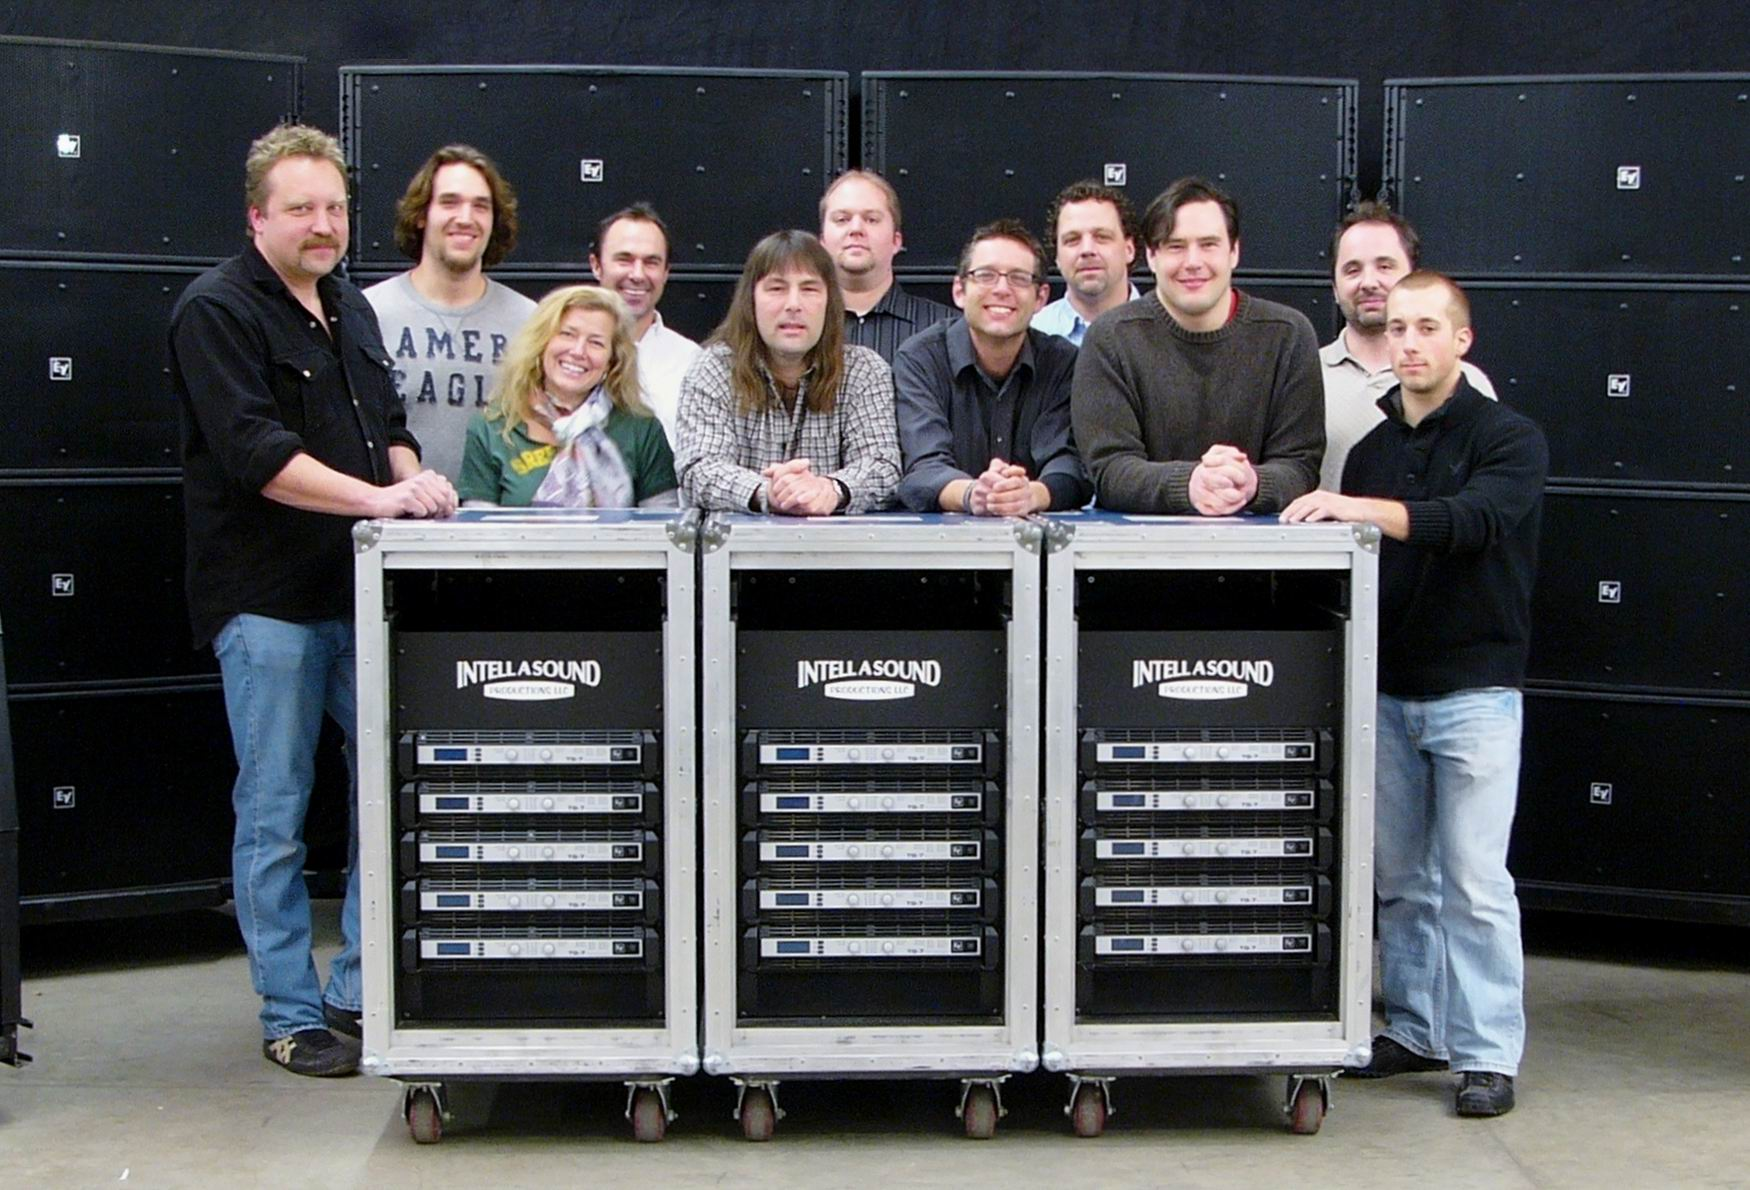 2011 Intellasound Staff